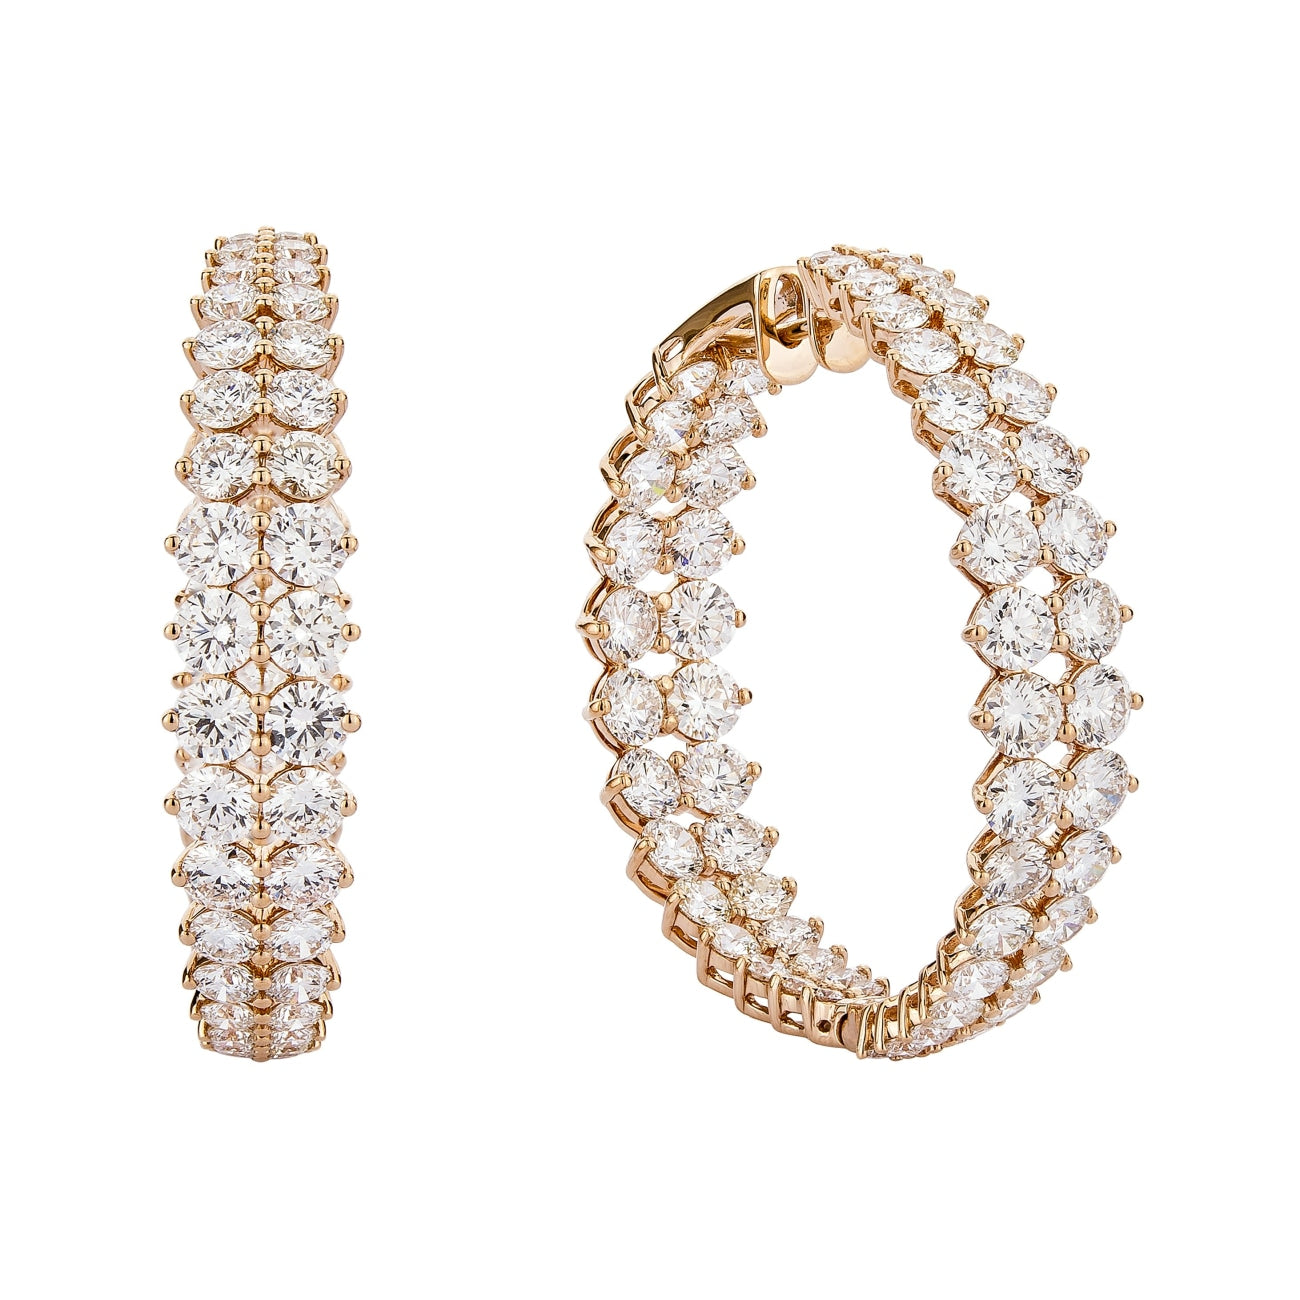 Etho Maria Jewelry - 2 rows of graduated diamond hoops in/out | Manfredi Jewels